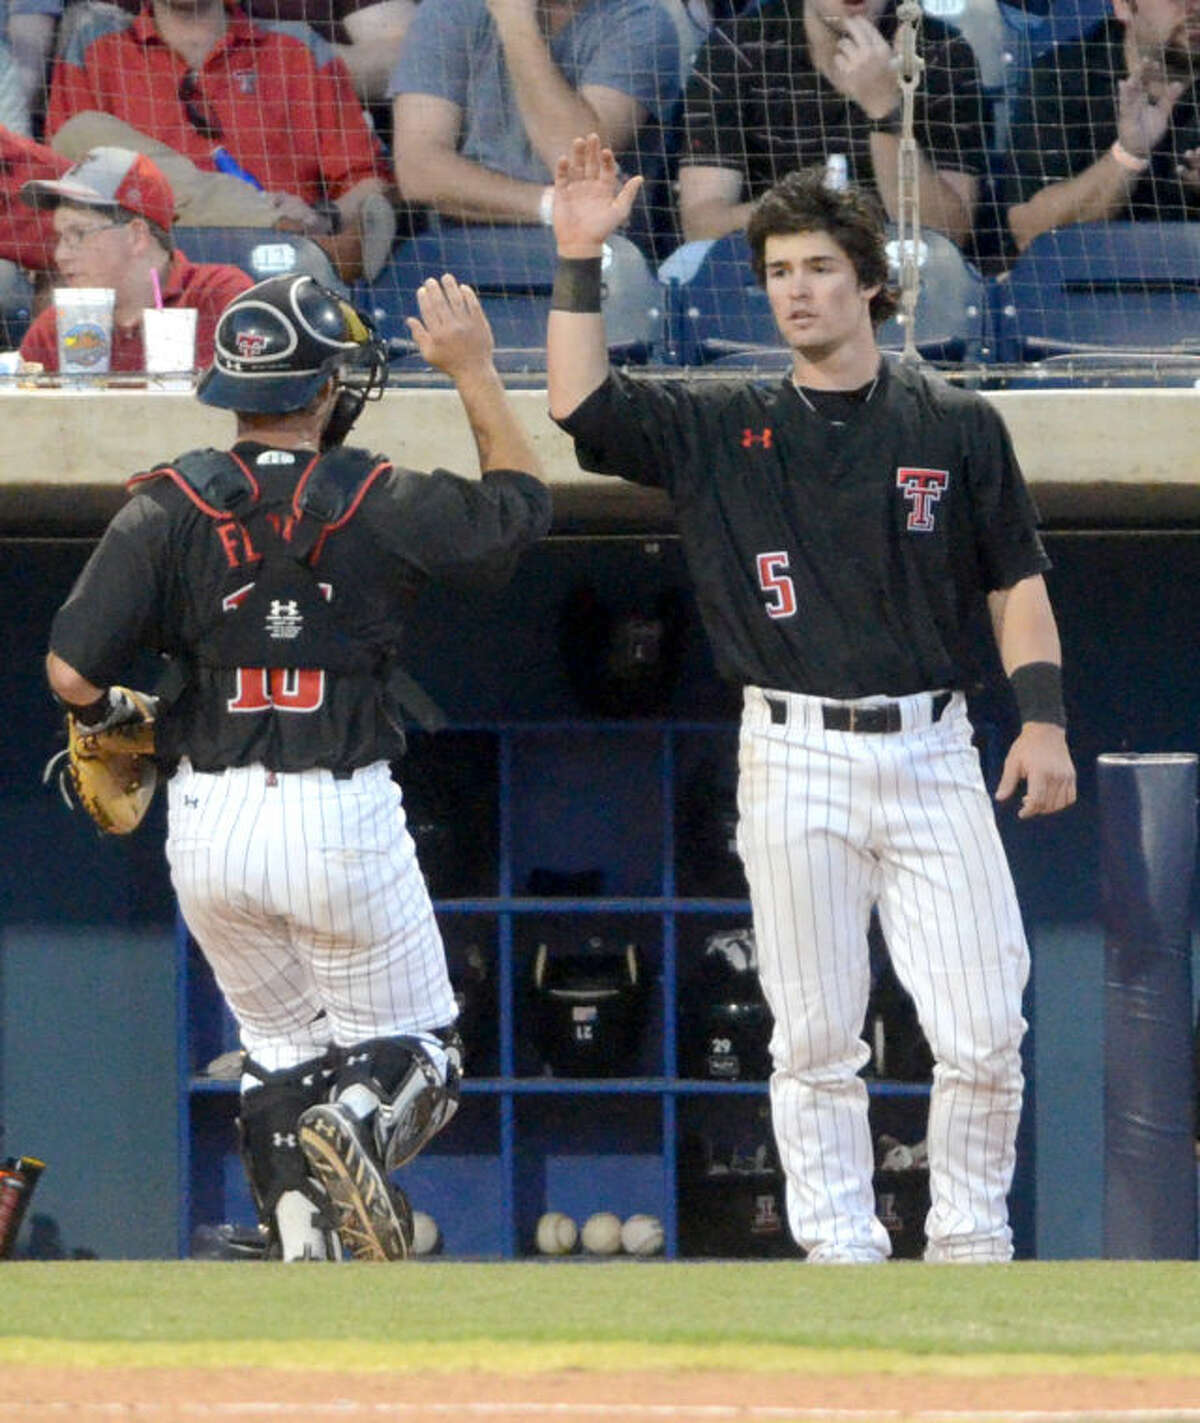 Texas Tech catcher Hunter Redman (5) high-fives catcher Tyler Floyd as he returns to the dugout between innings during a non-conference game against New Mexico on Tuesday at Security Bank Ballpark. James Durbin/Reporter-Telegram